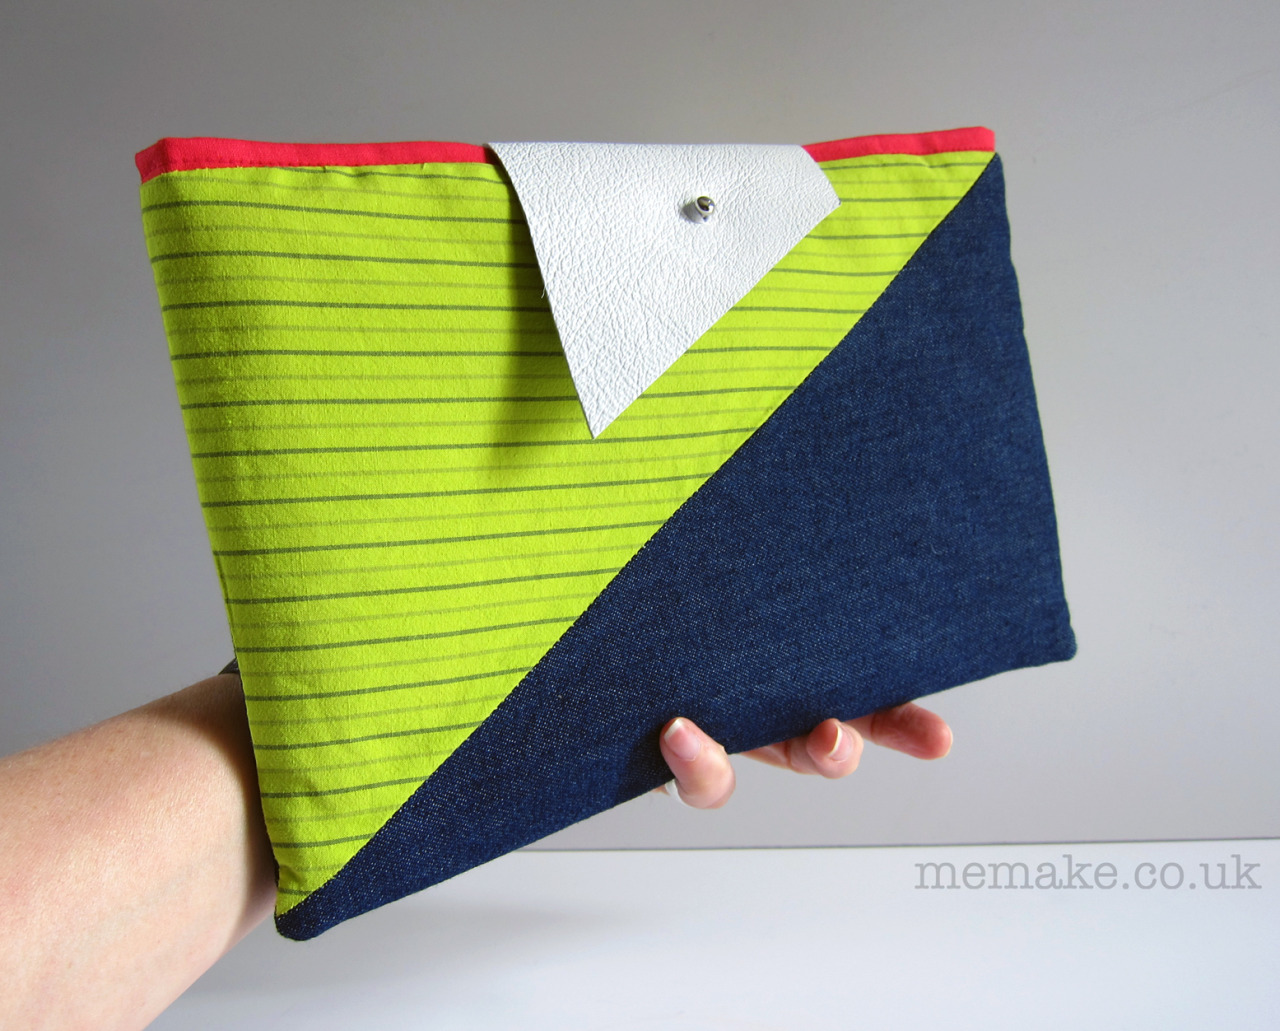 Geometric colour block clutch purse by memake